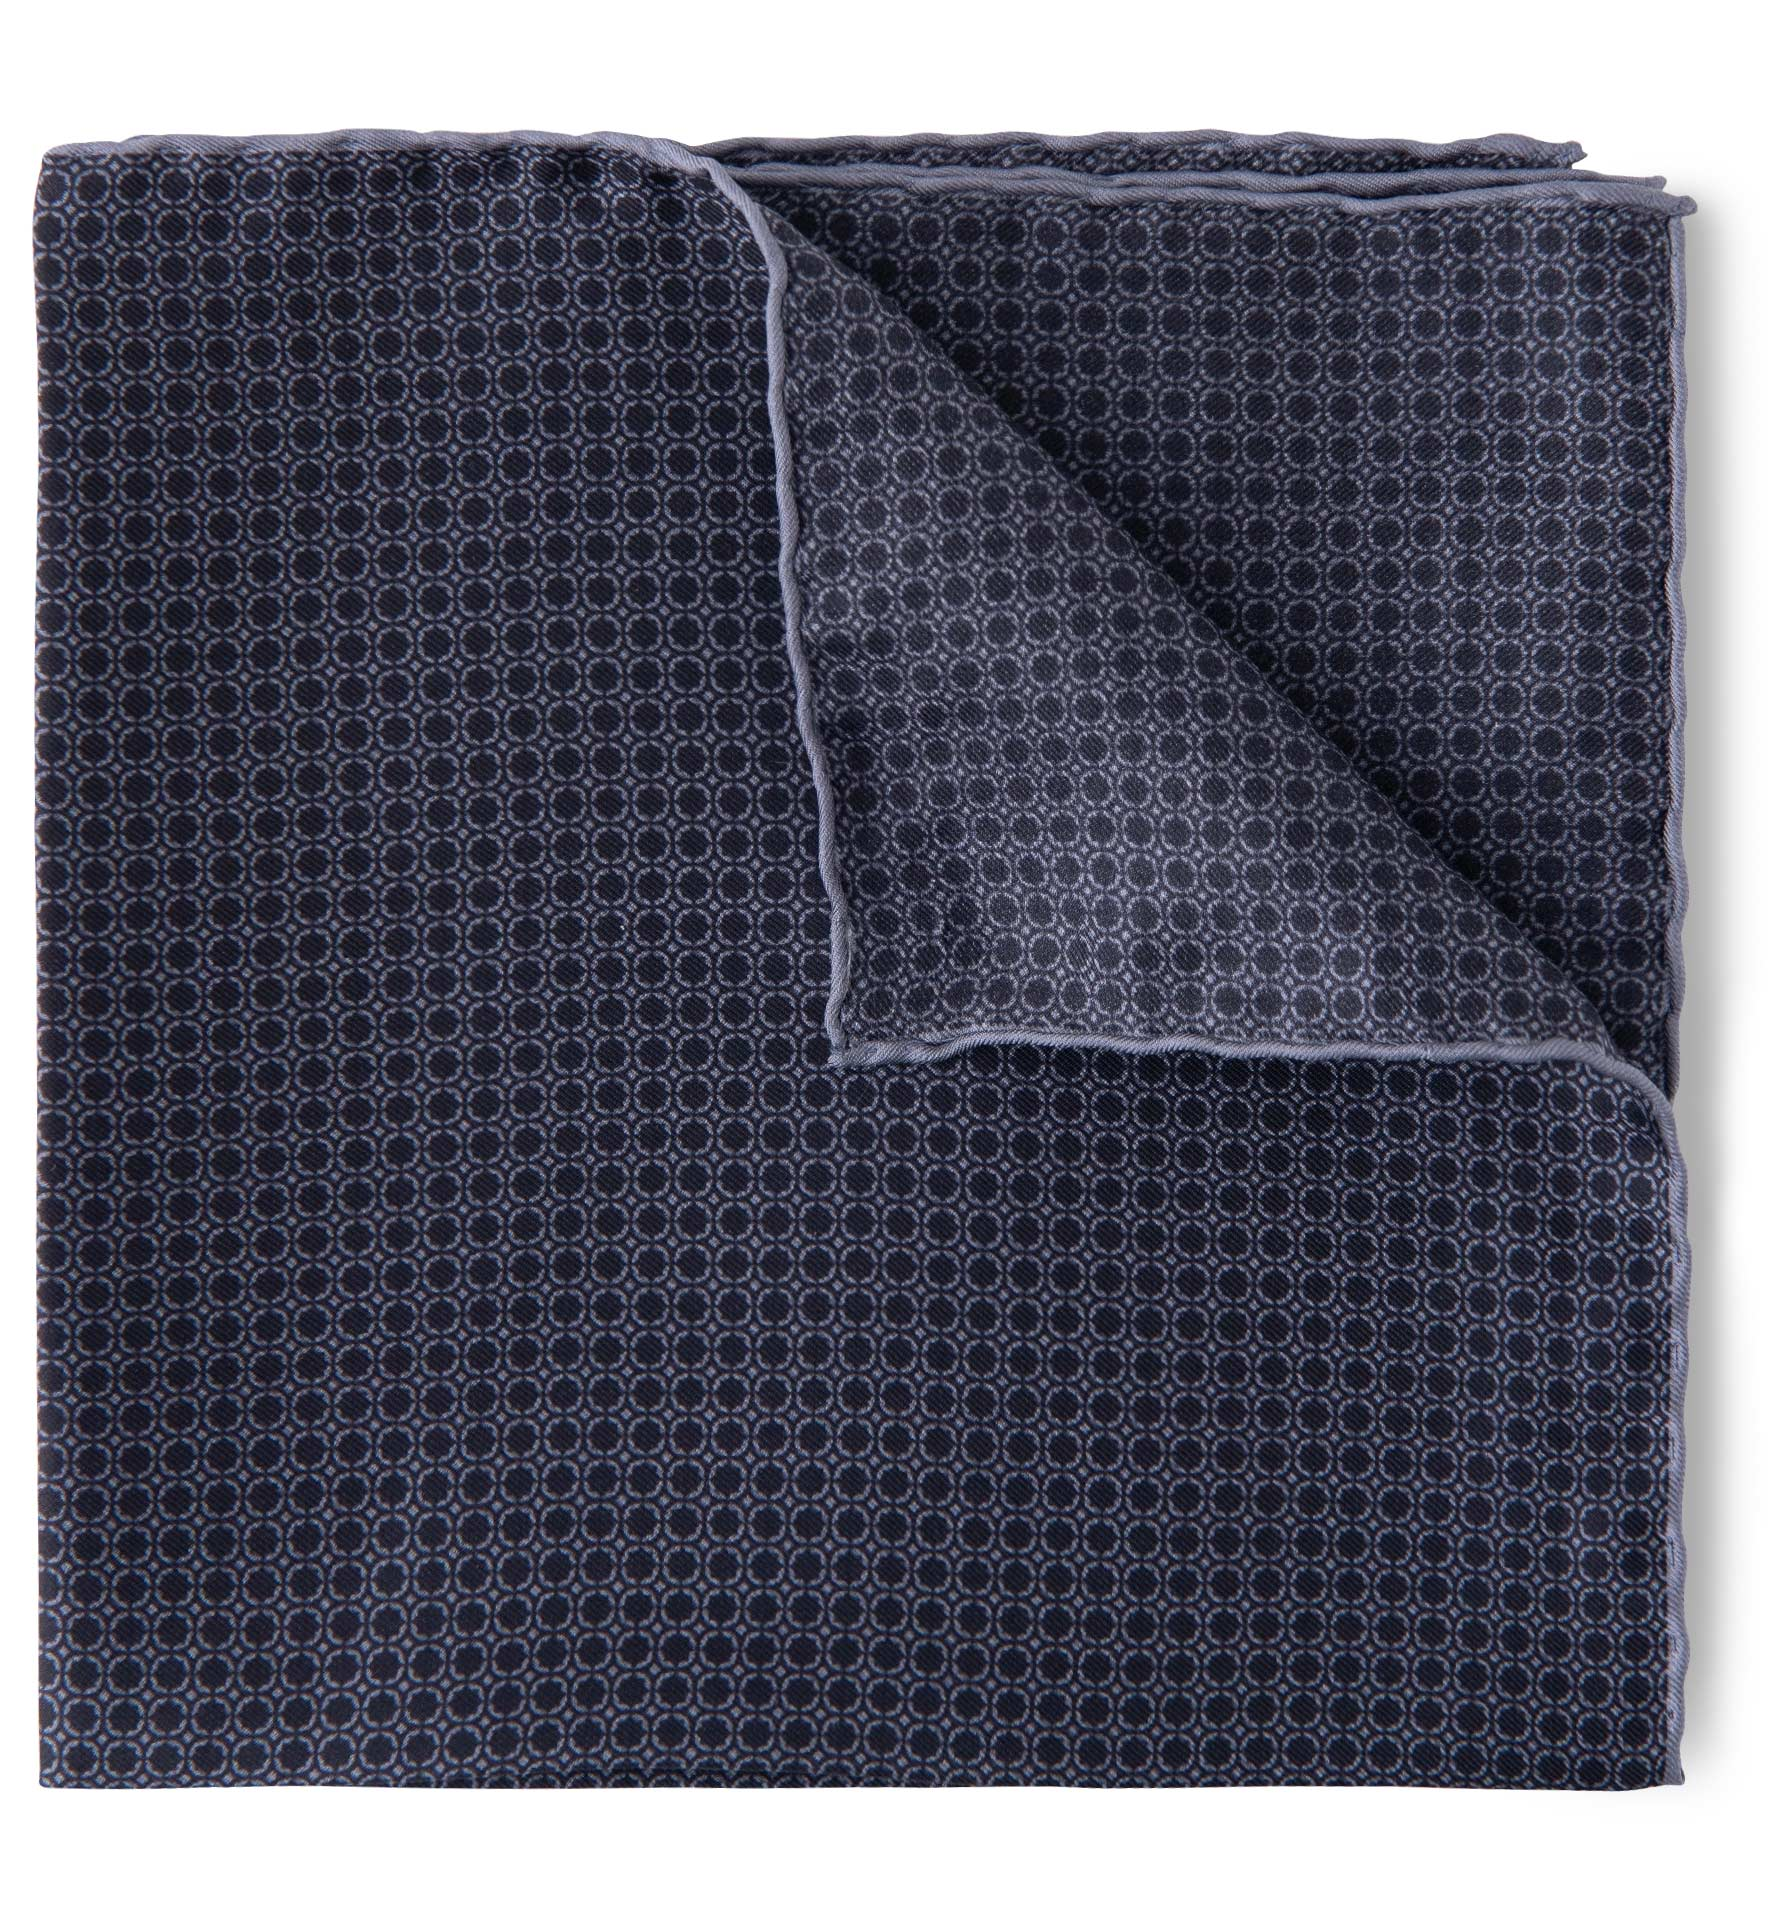 Zoom Image of Black and Grey Silk Pocket Square